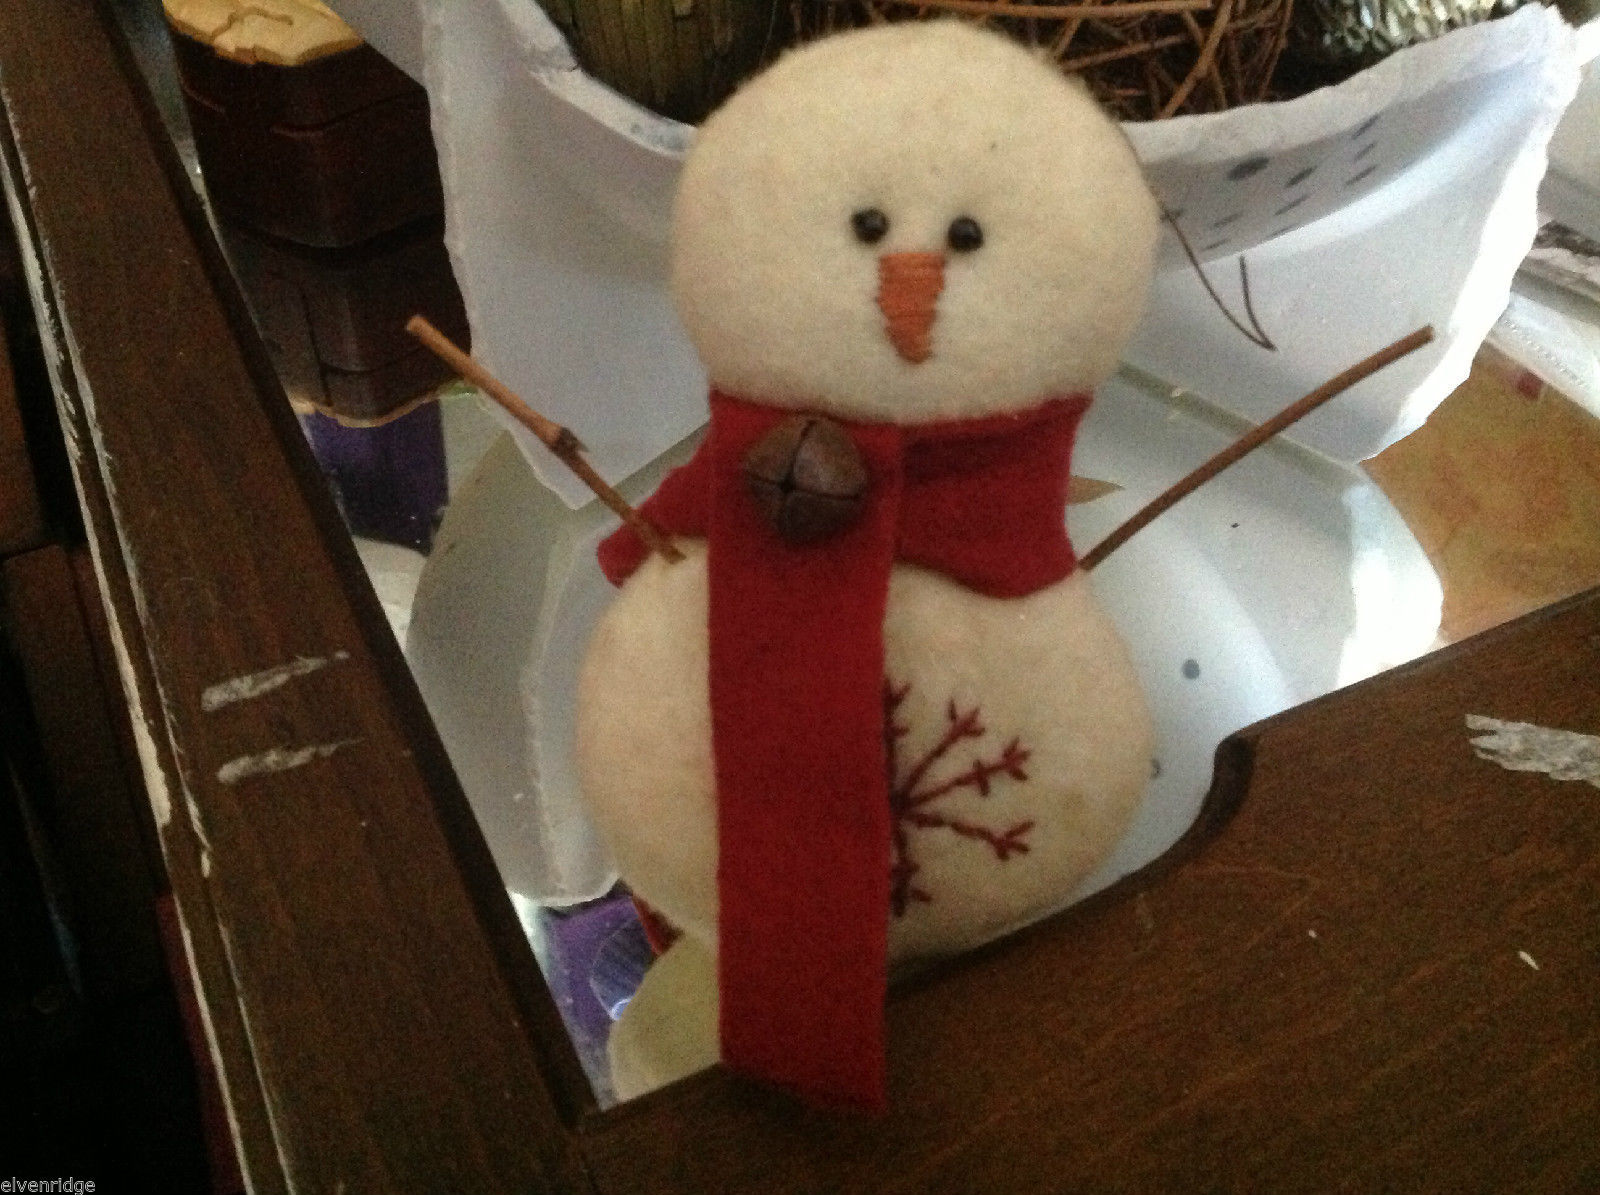 New puffy white snowman ornament with stitched snowflake scarf and stick arms